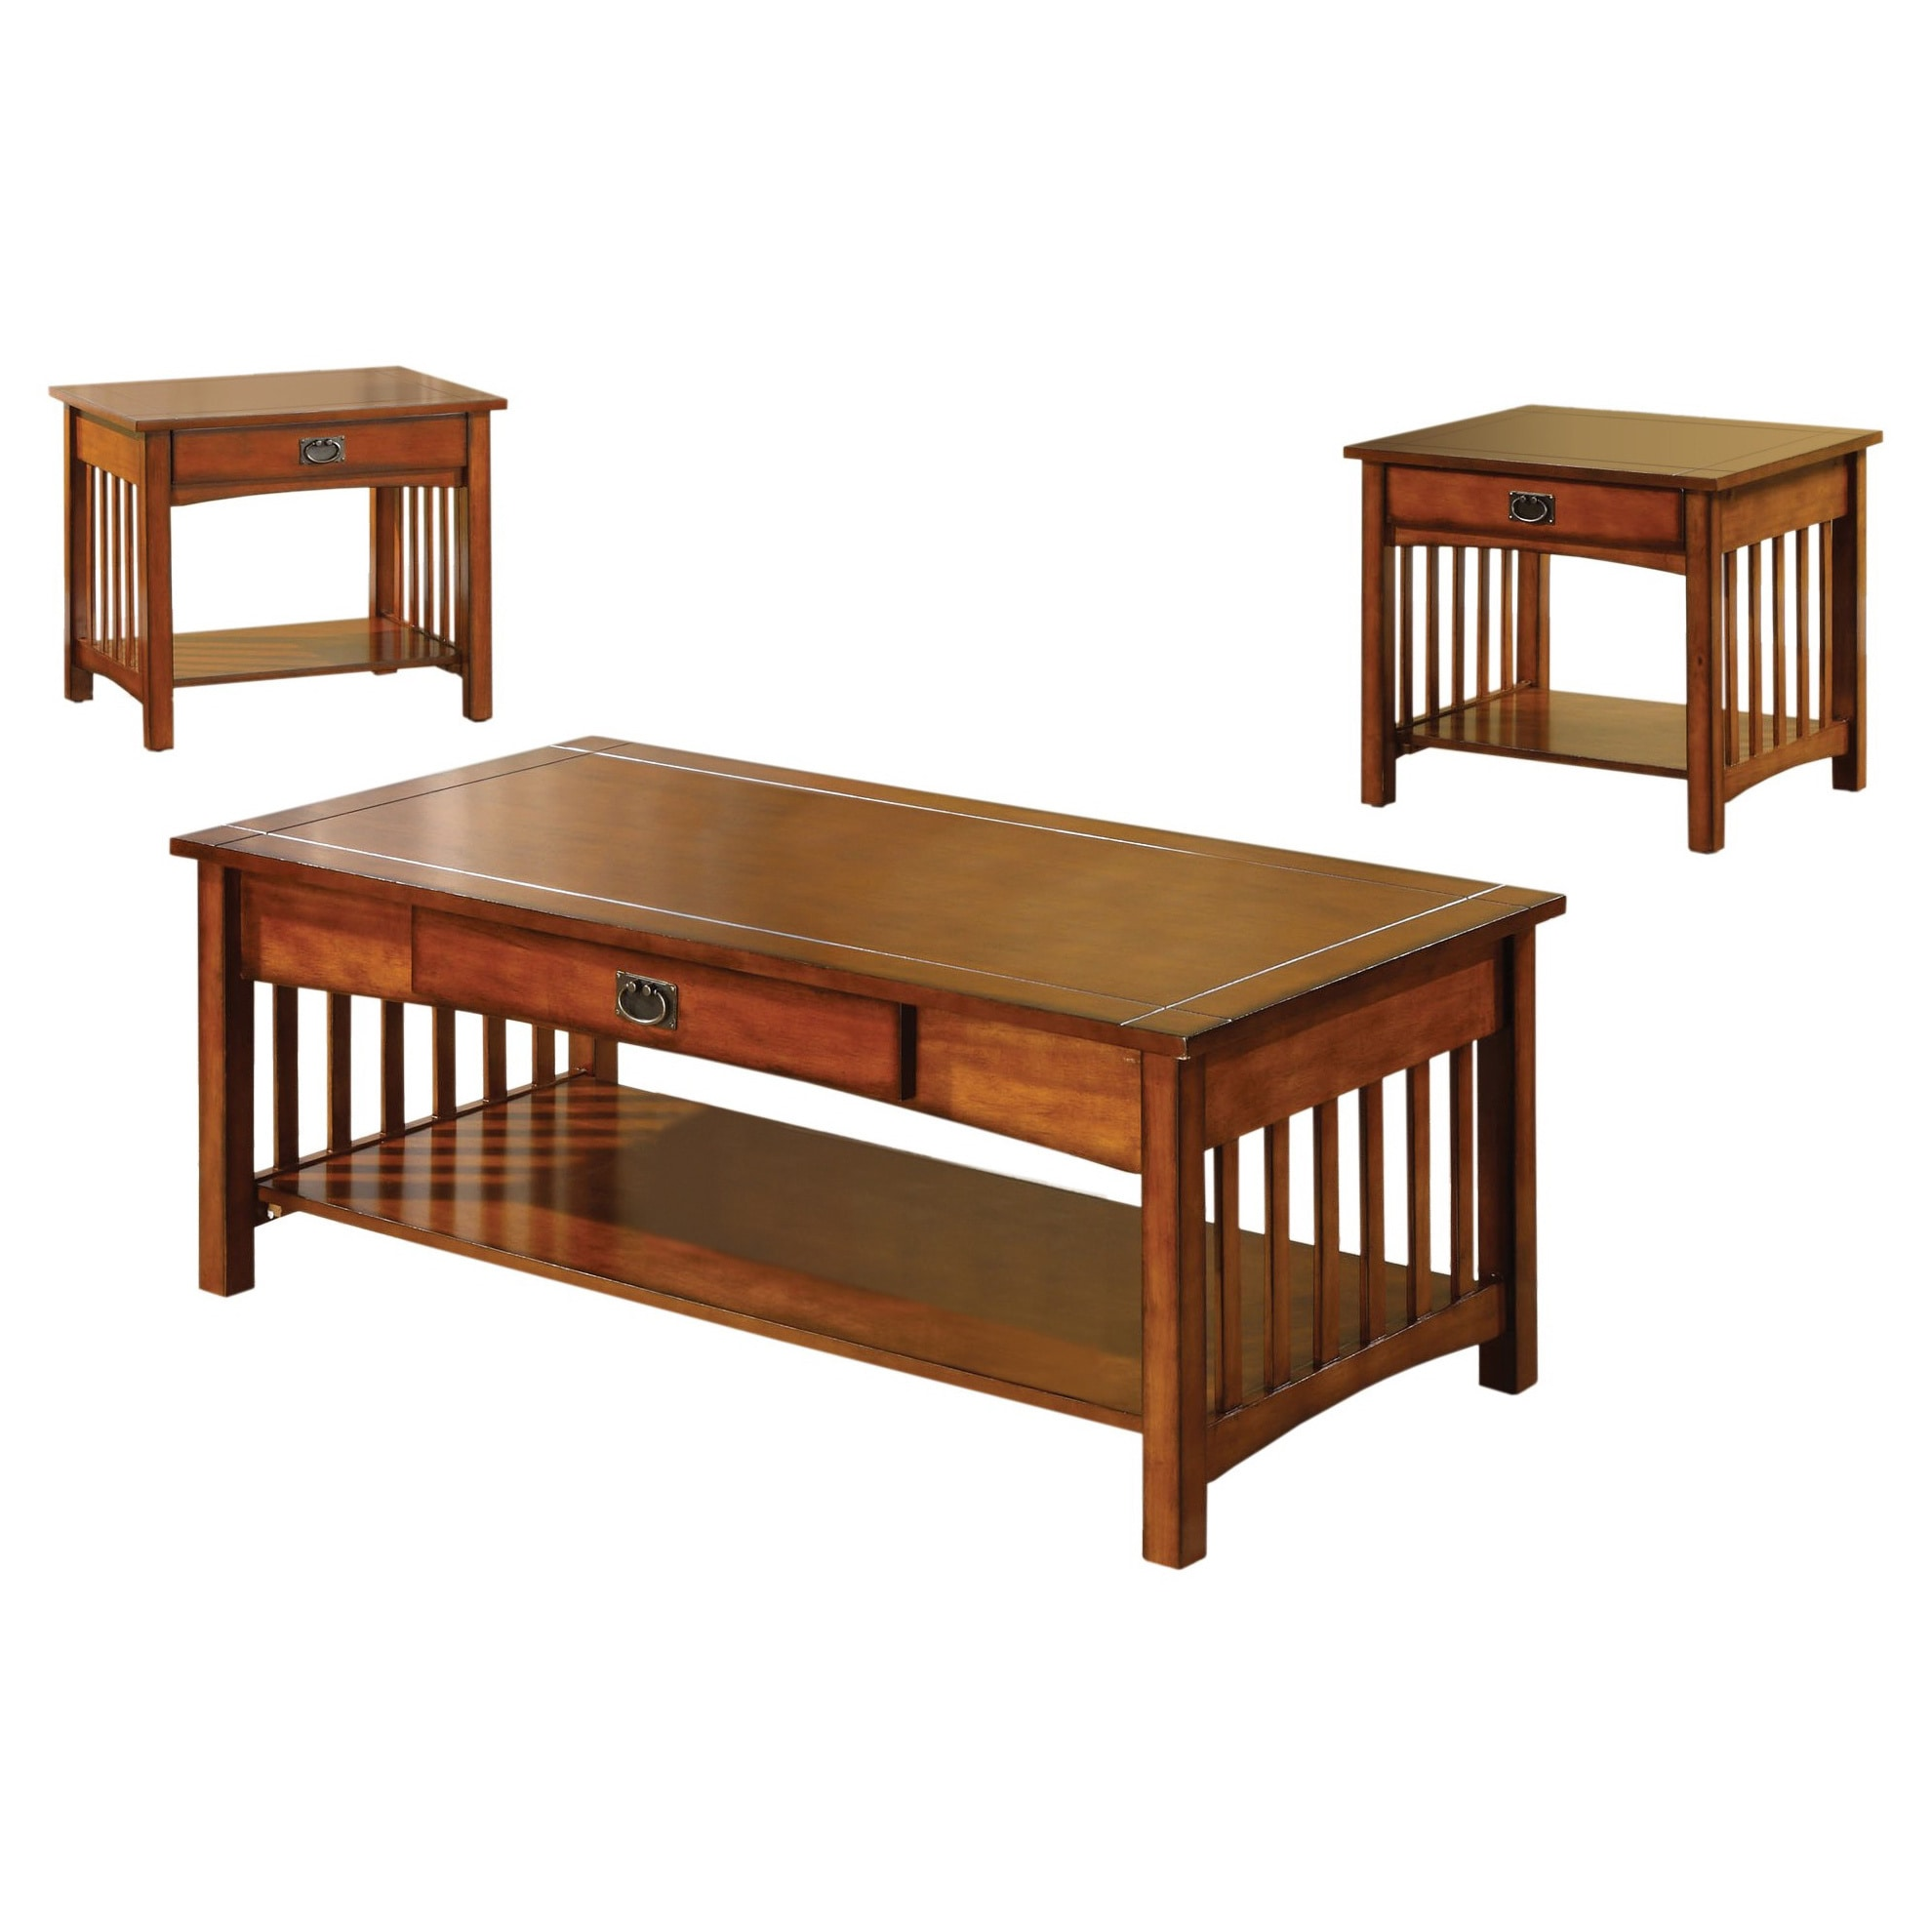 Furniture of America Nash Mission Style 3-piece Antique O...